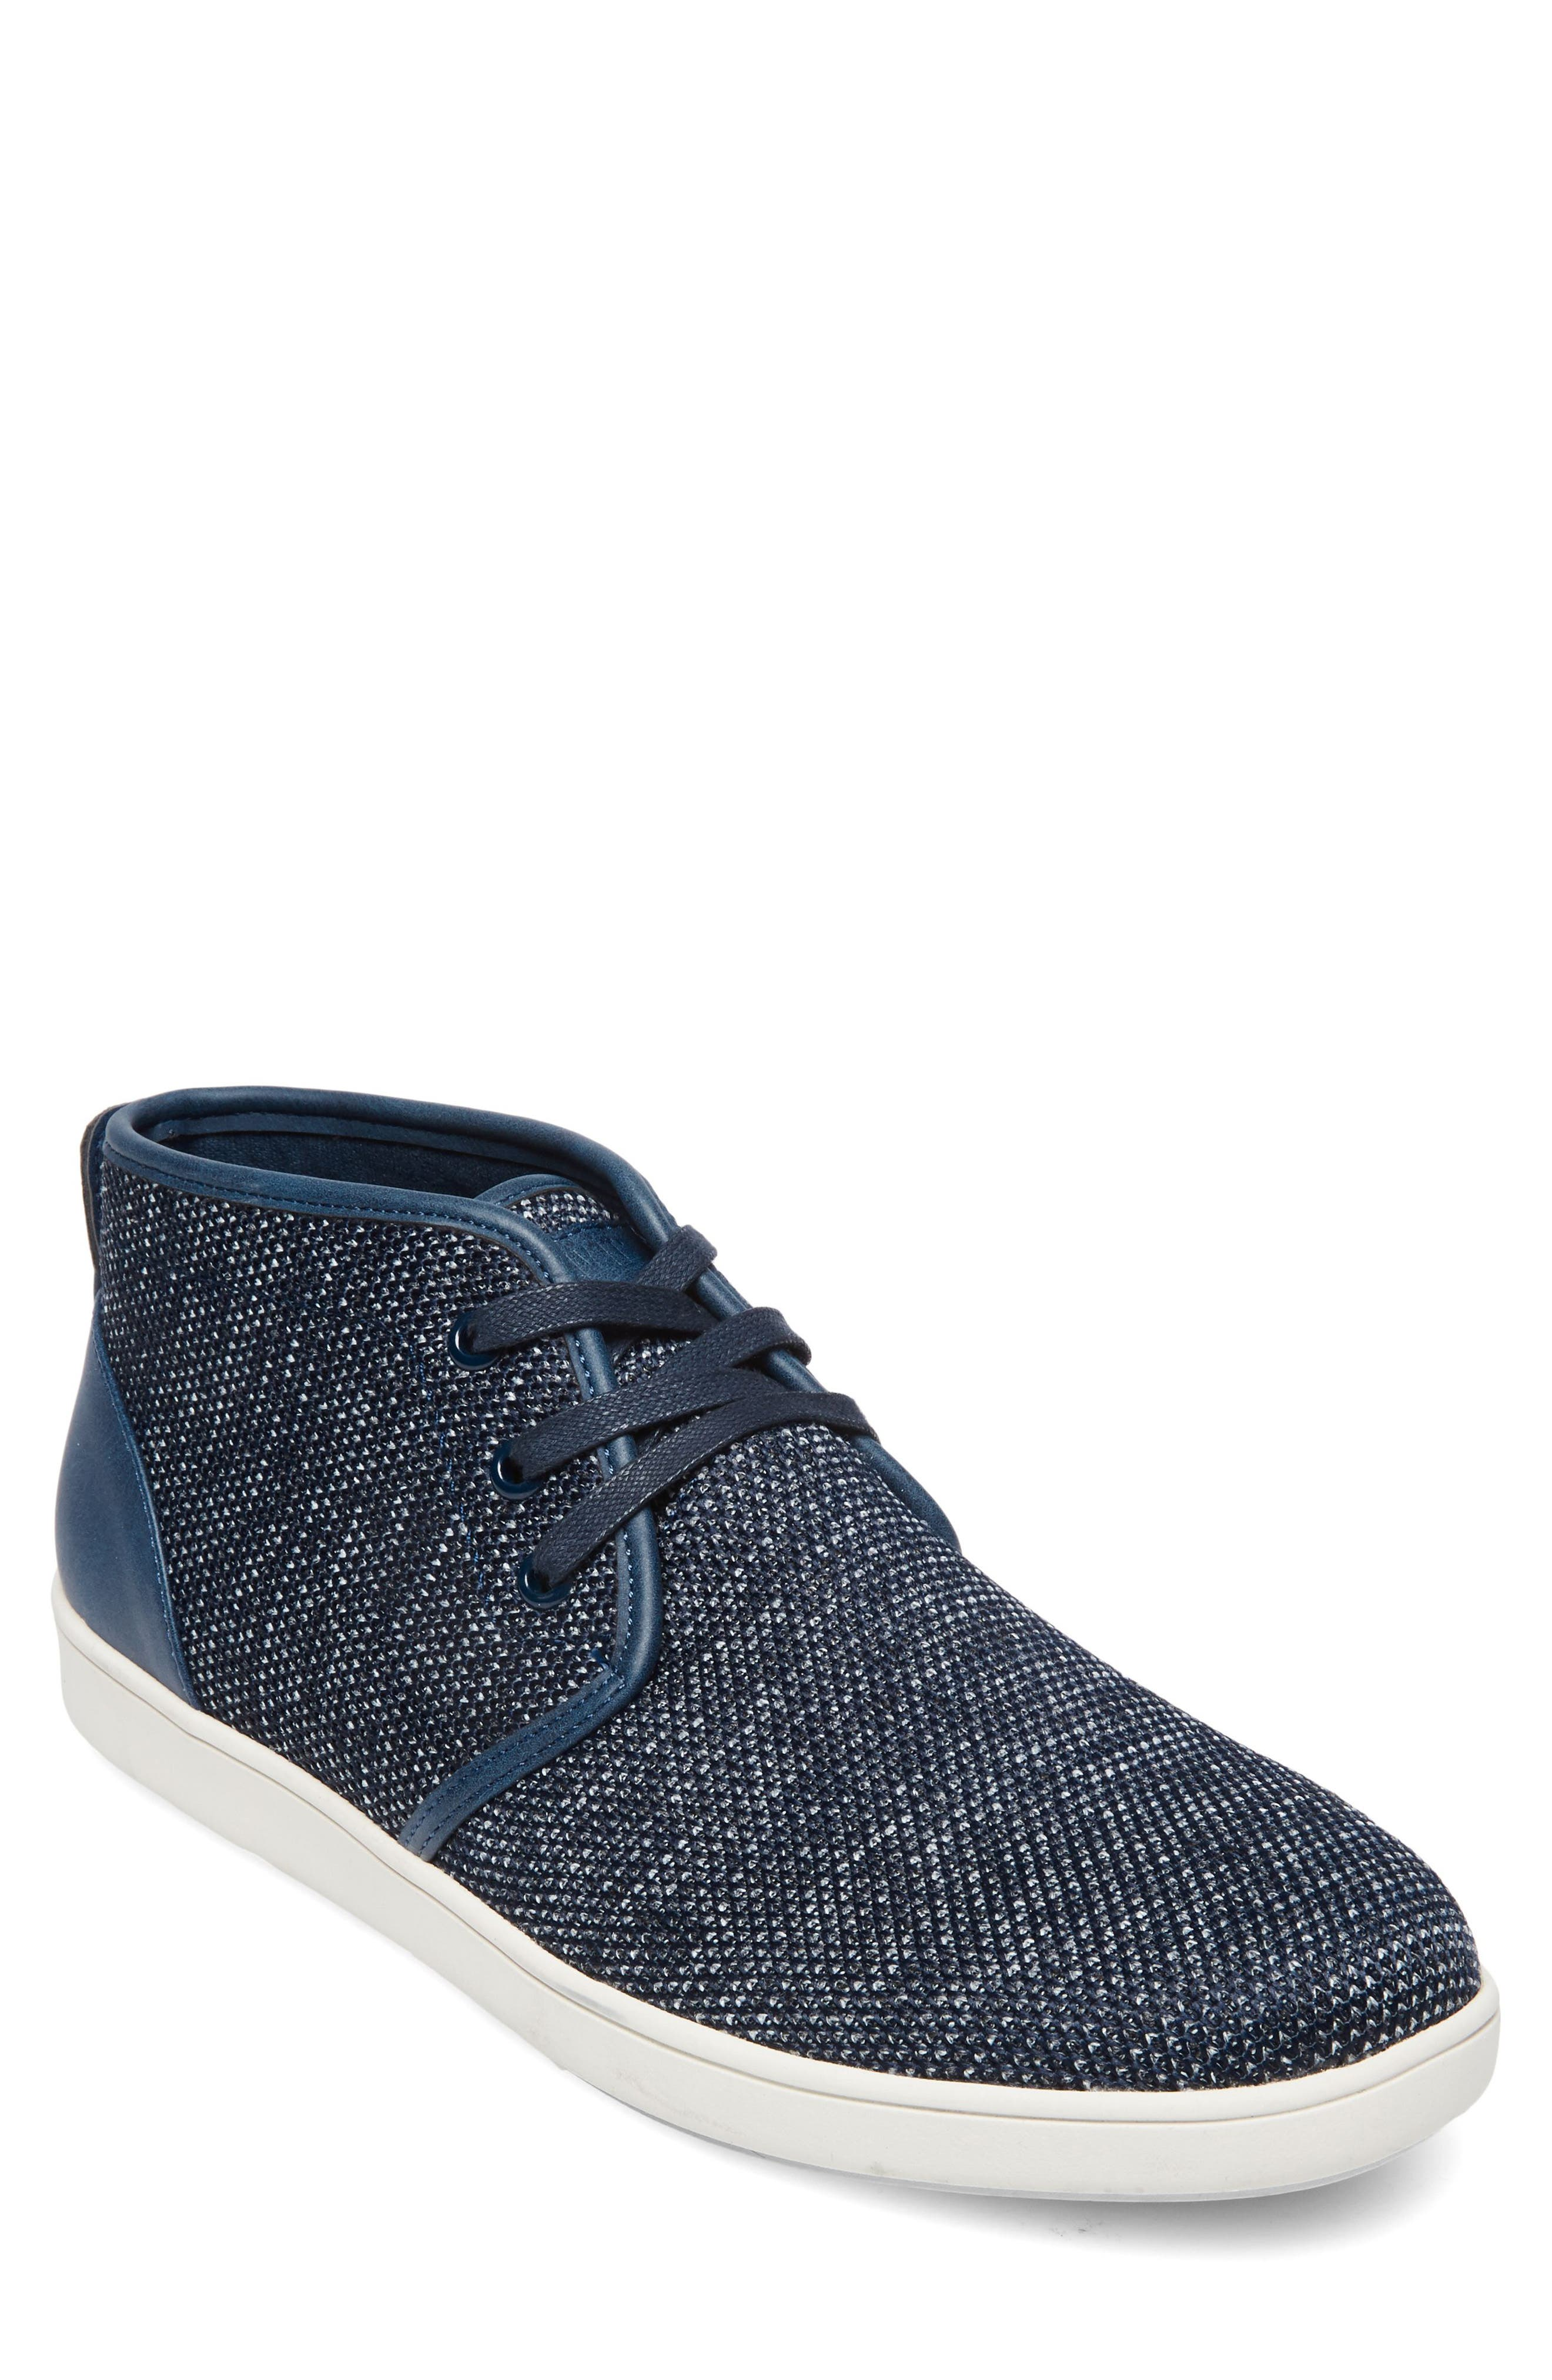 Fowler Knit Mid Top Sneaker,                             Main thumbnail 1, color,                             Navy Leather